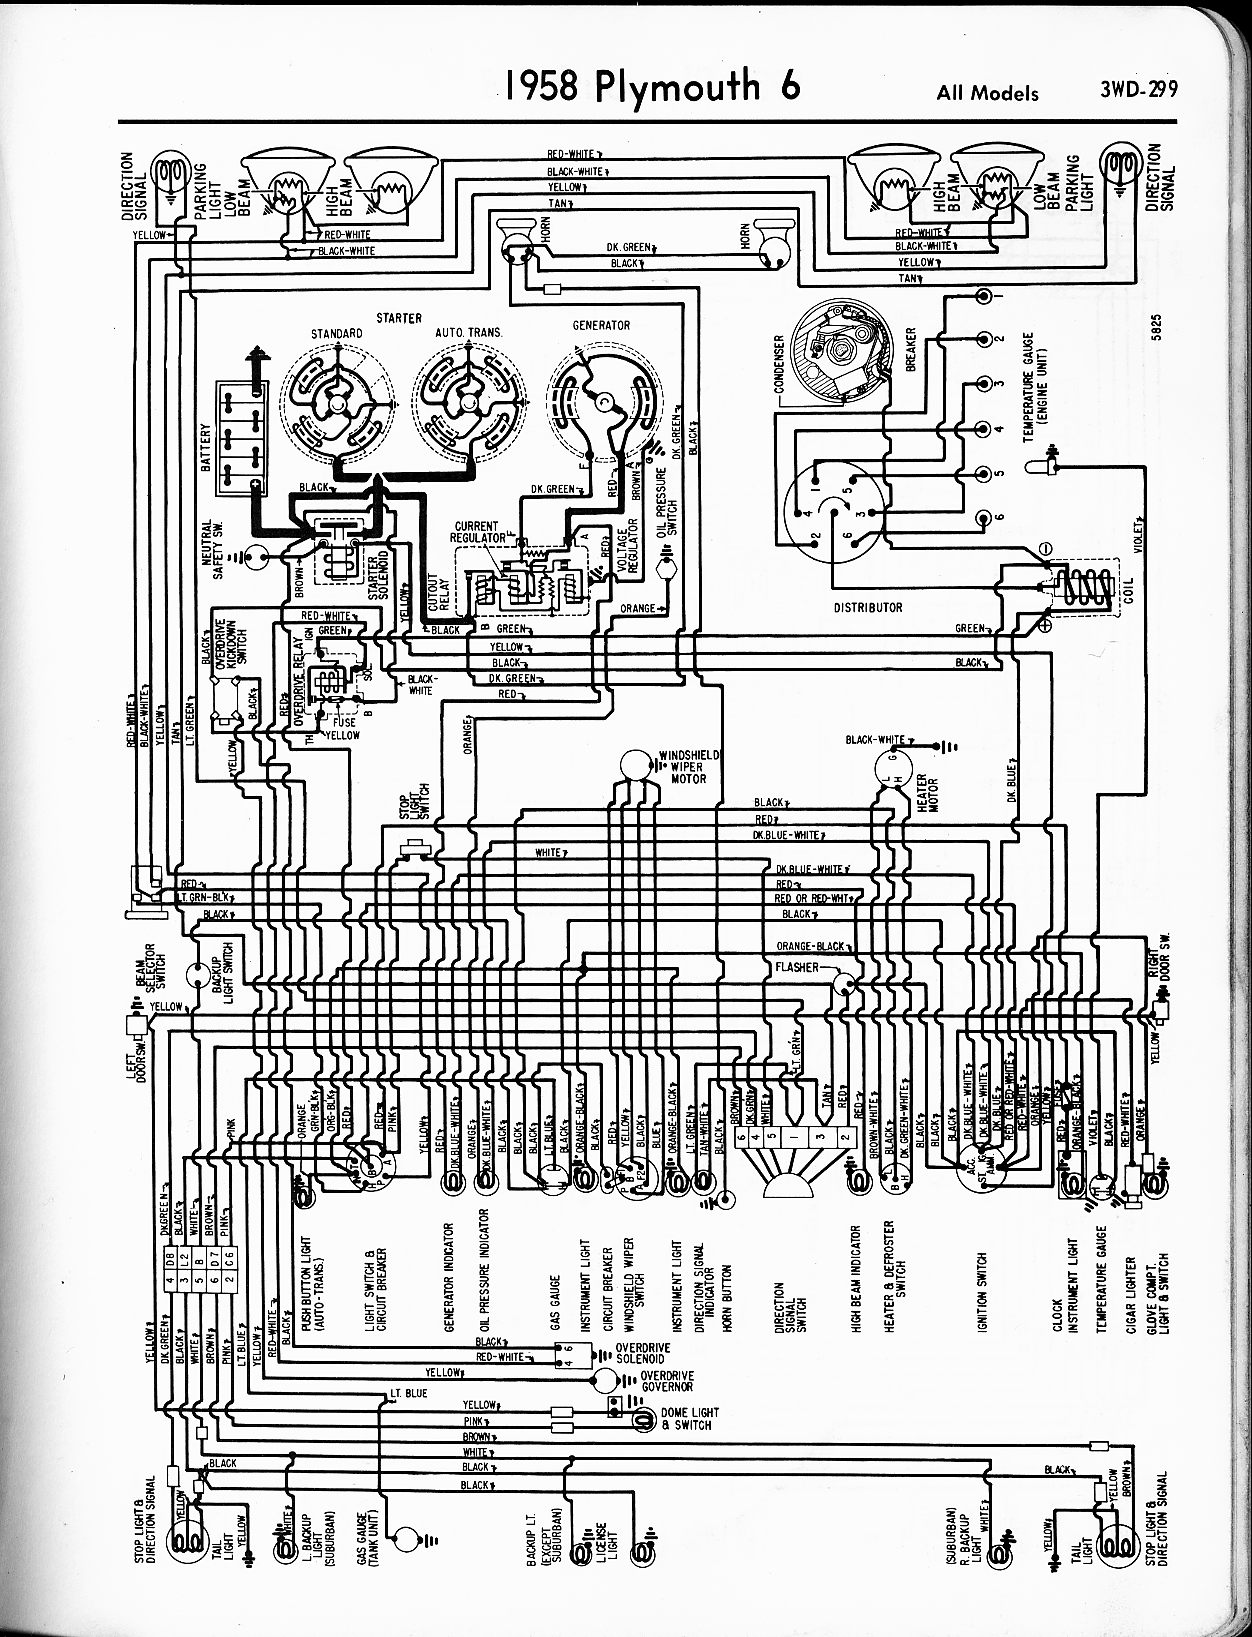 1958 plymouth wiring diagram 9 6 artatec automobile de \u20221956 1965 plymouth wiring the old car manual project rh oldcarmanualproject com mopar wiring diagrams plymouth wiring diagrams dash cluster